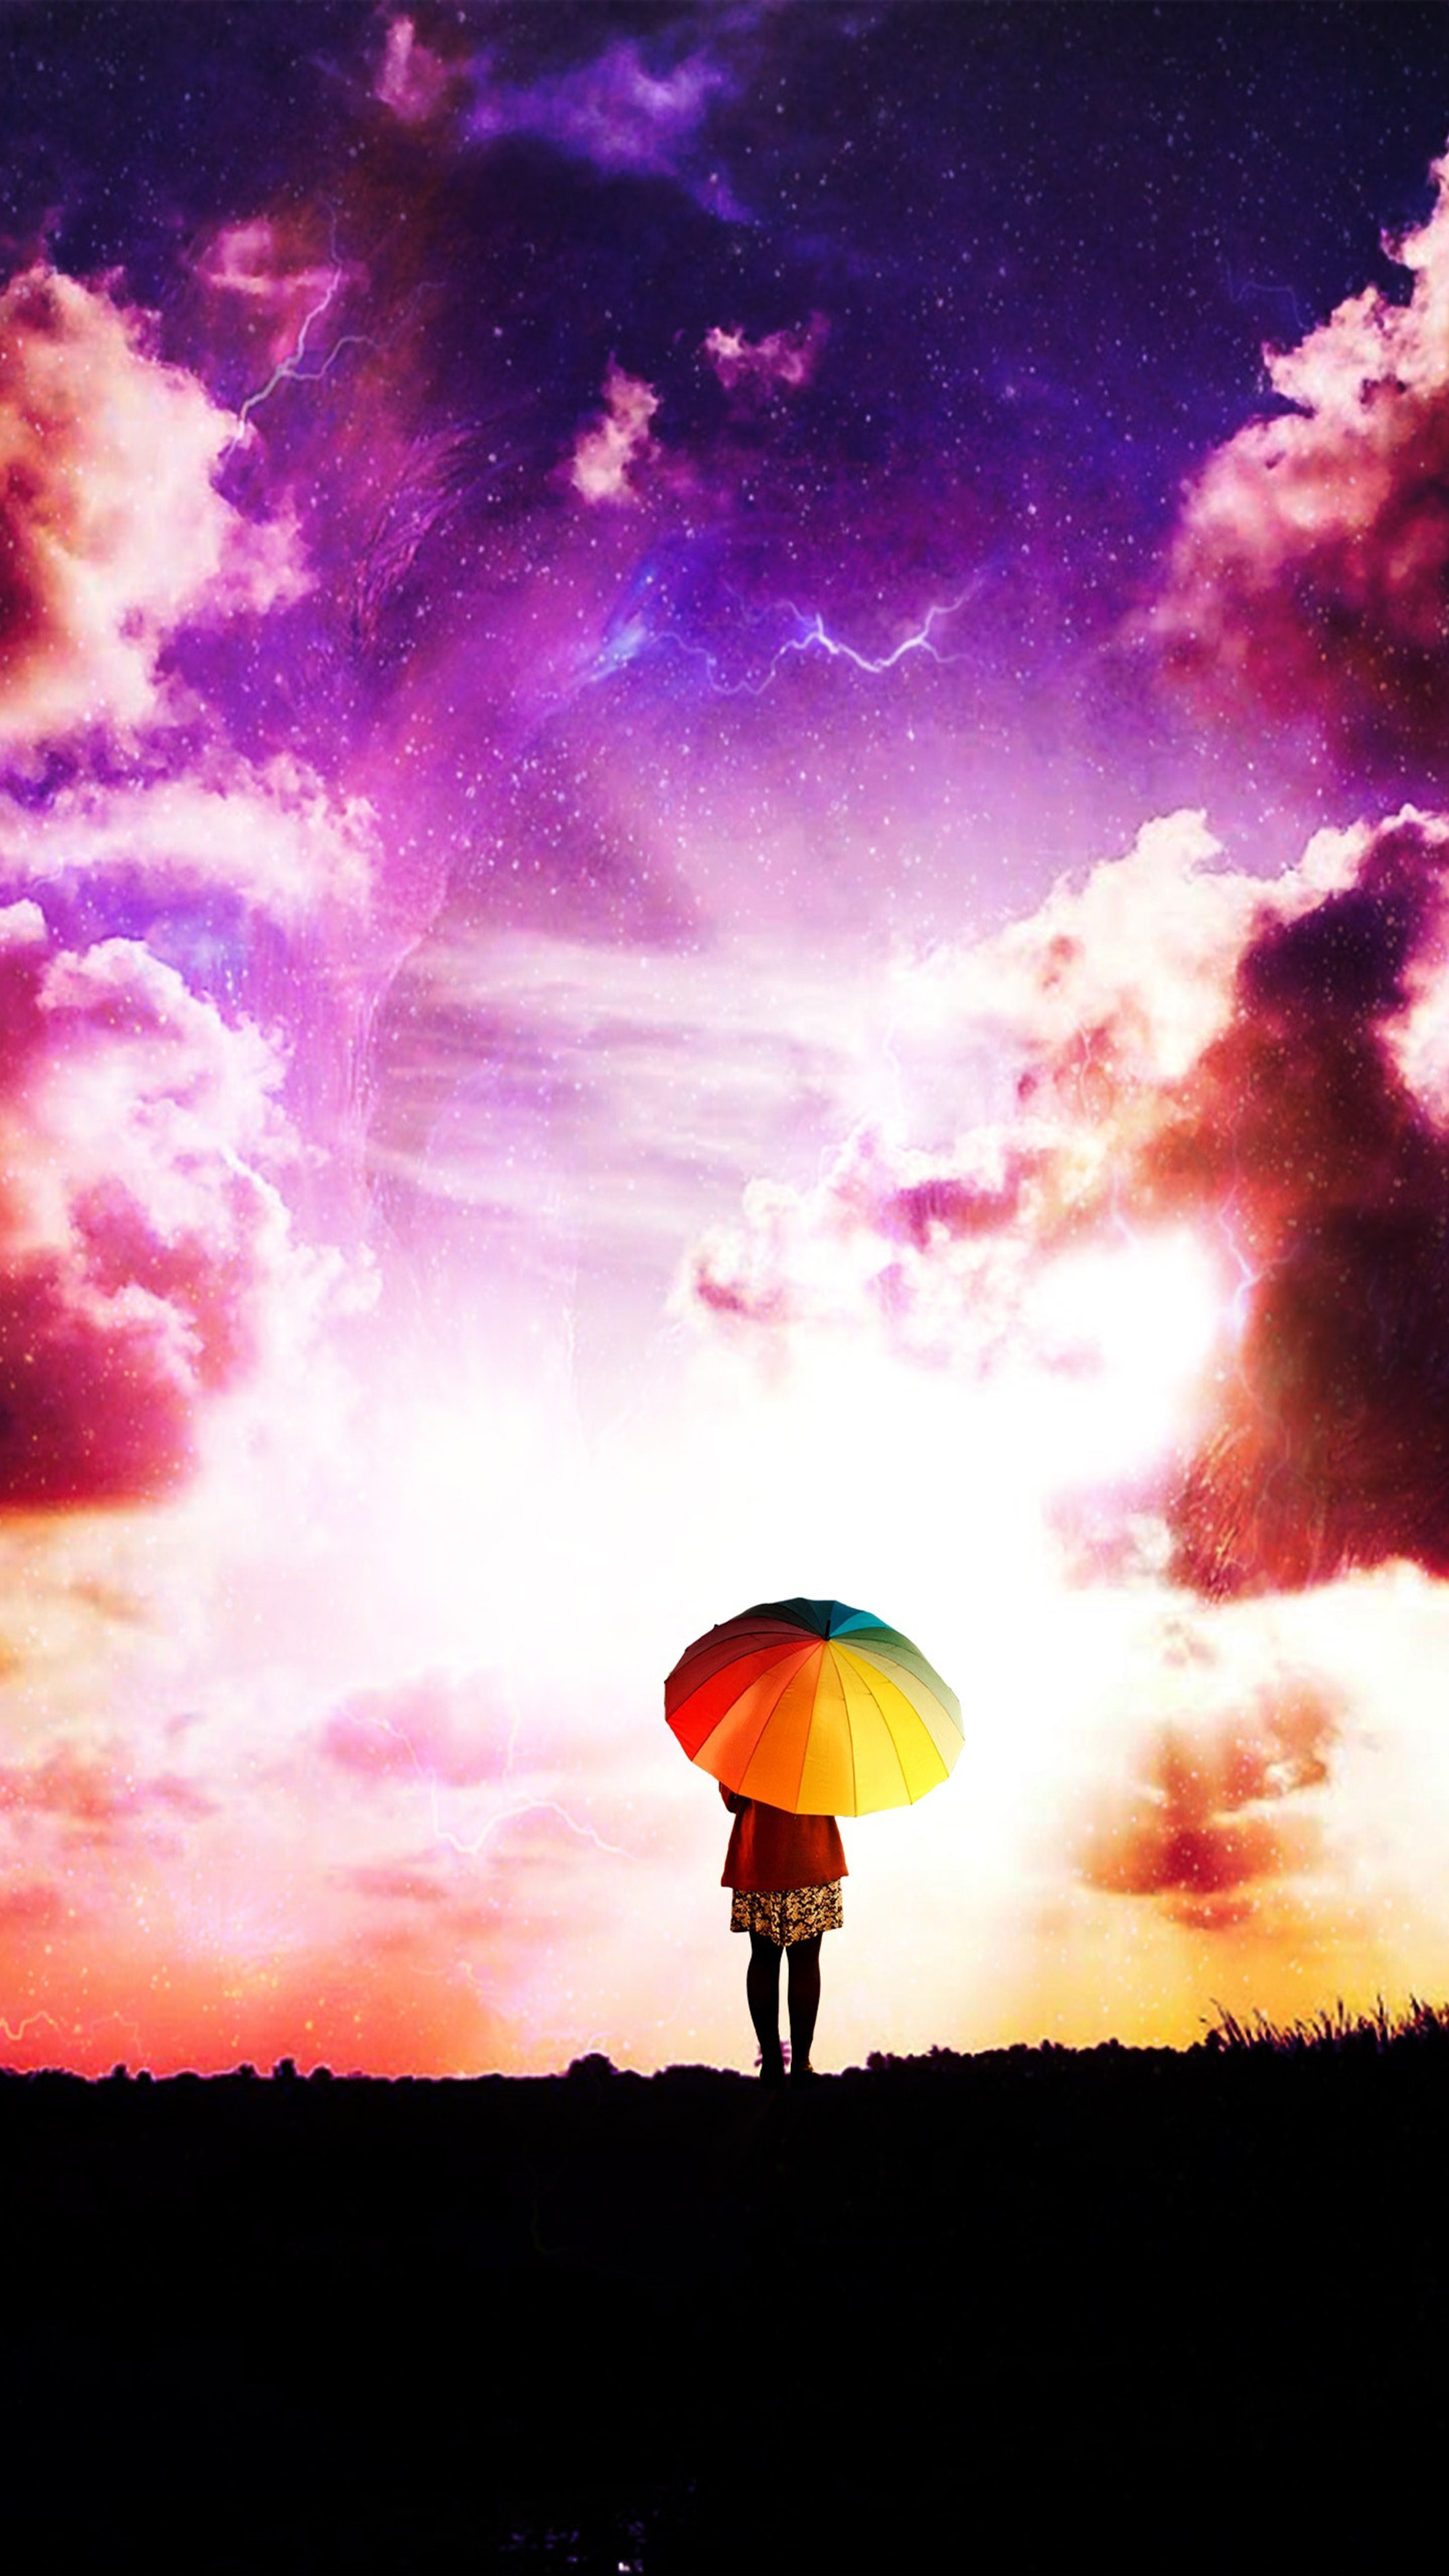 Hd Love Kiss Wallpapers For Android Download Lone Girl Colorful Umbrella Sunset Clouds Free